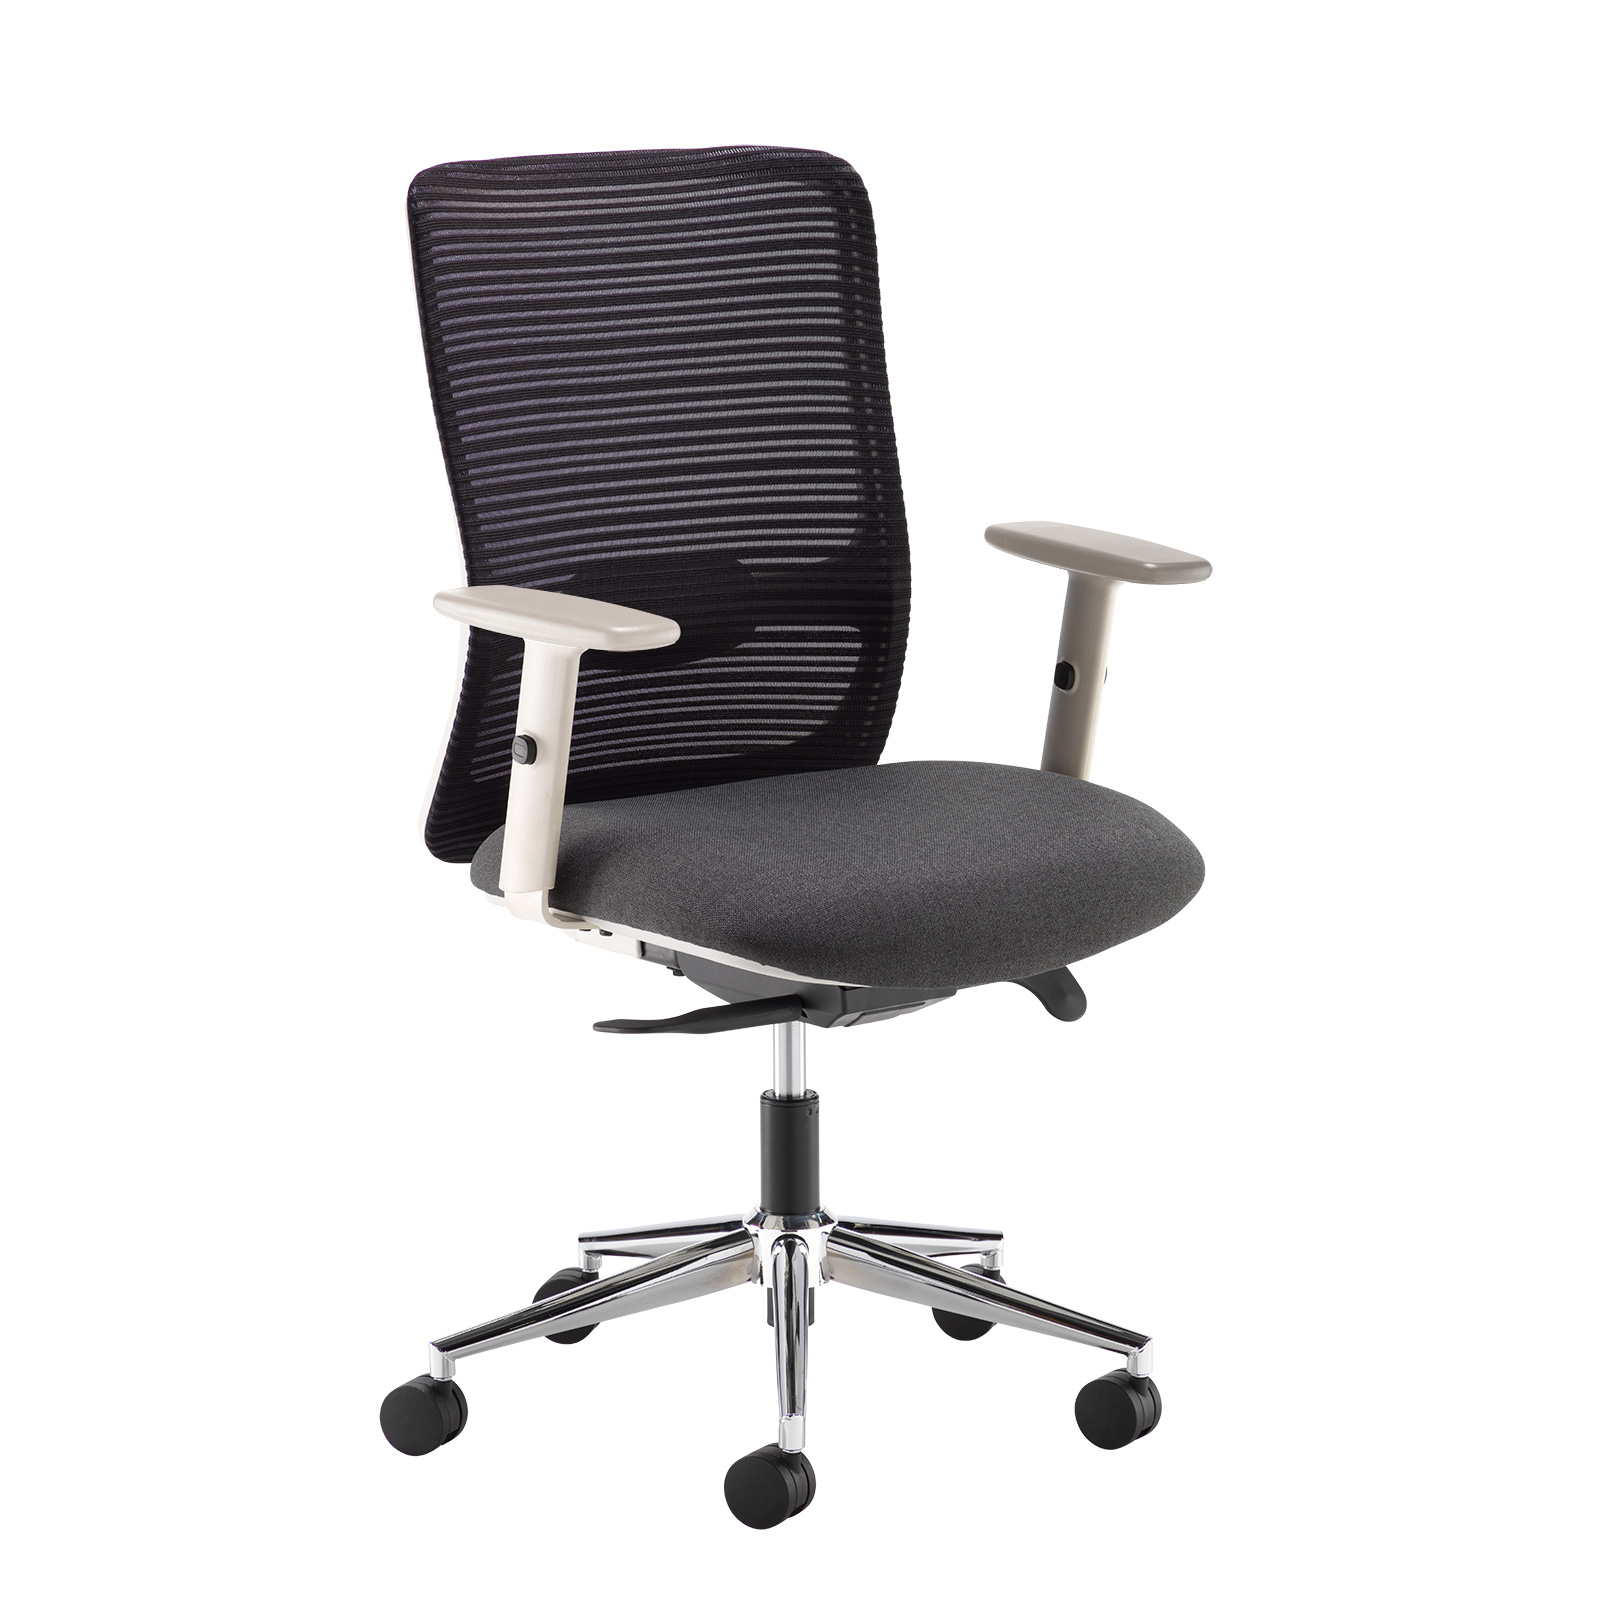 Desk Chairs Arcade black mesh back operator chair with black fabric seat, grey frame and chrome base